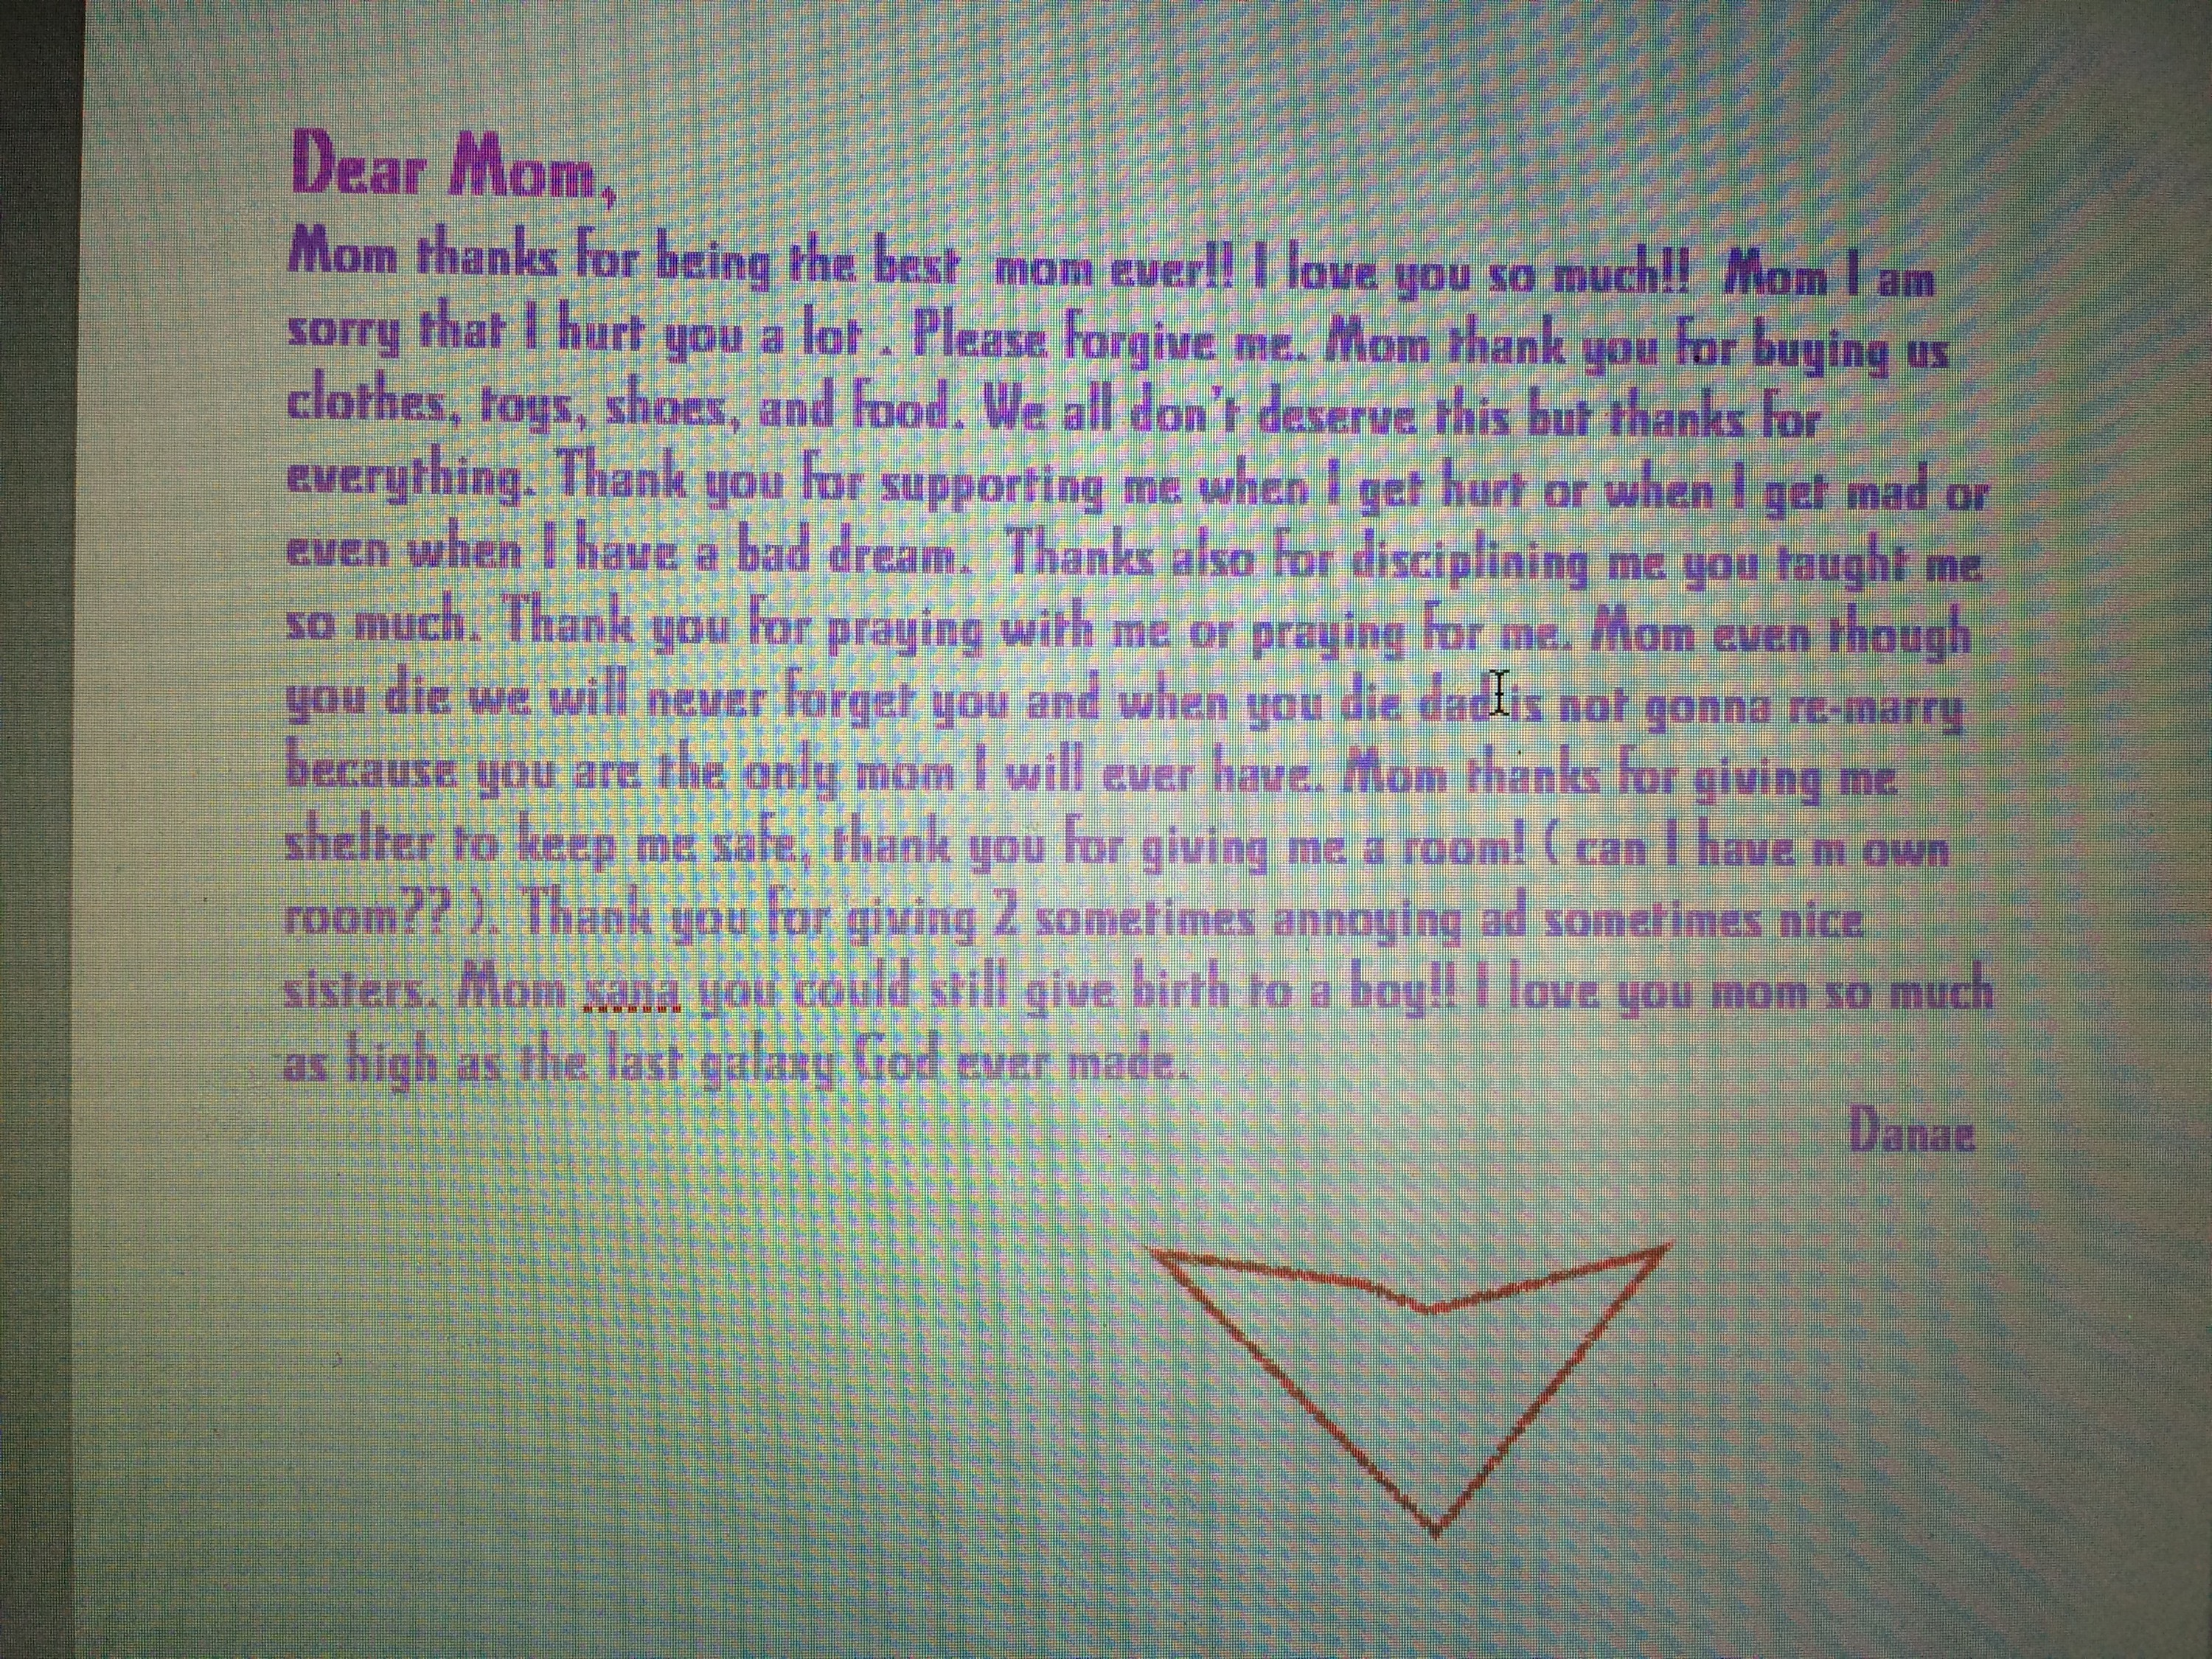 letter on my laptop on my birthday it shows her personality pretty accurately haha she warmed my heart and made me laugh out loud thank you naenae